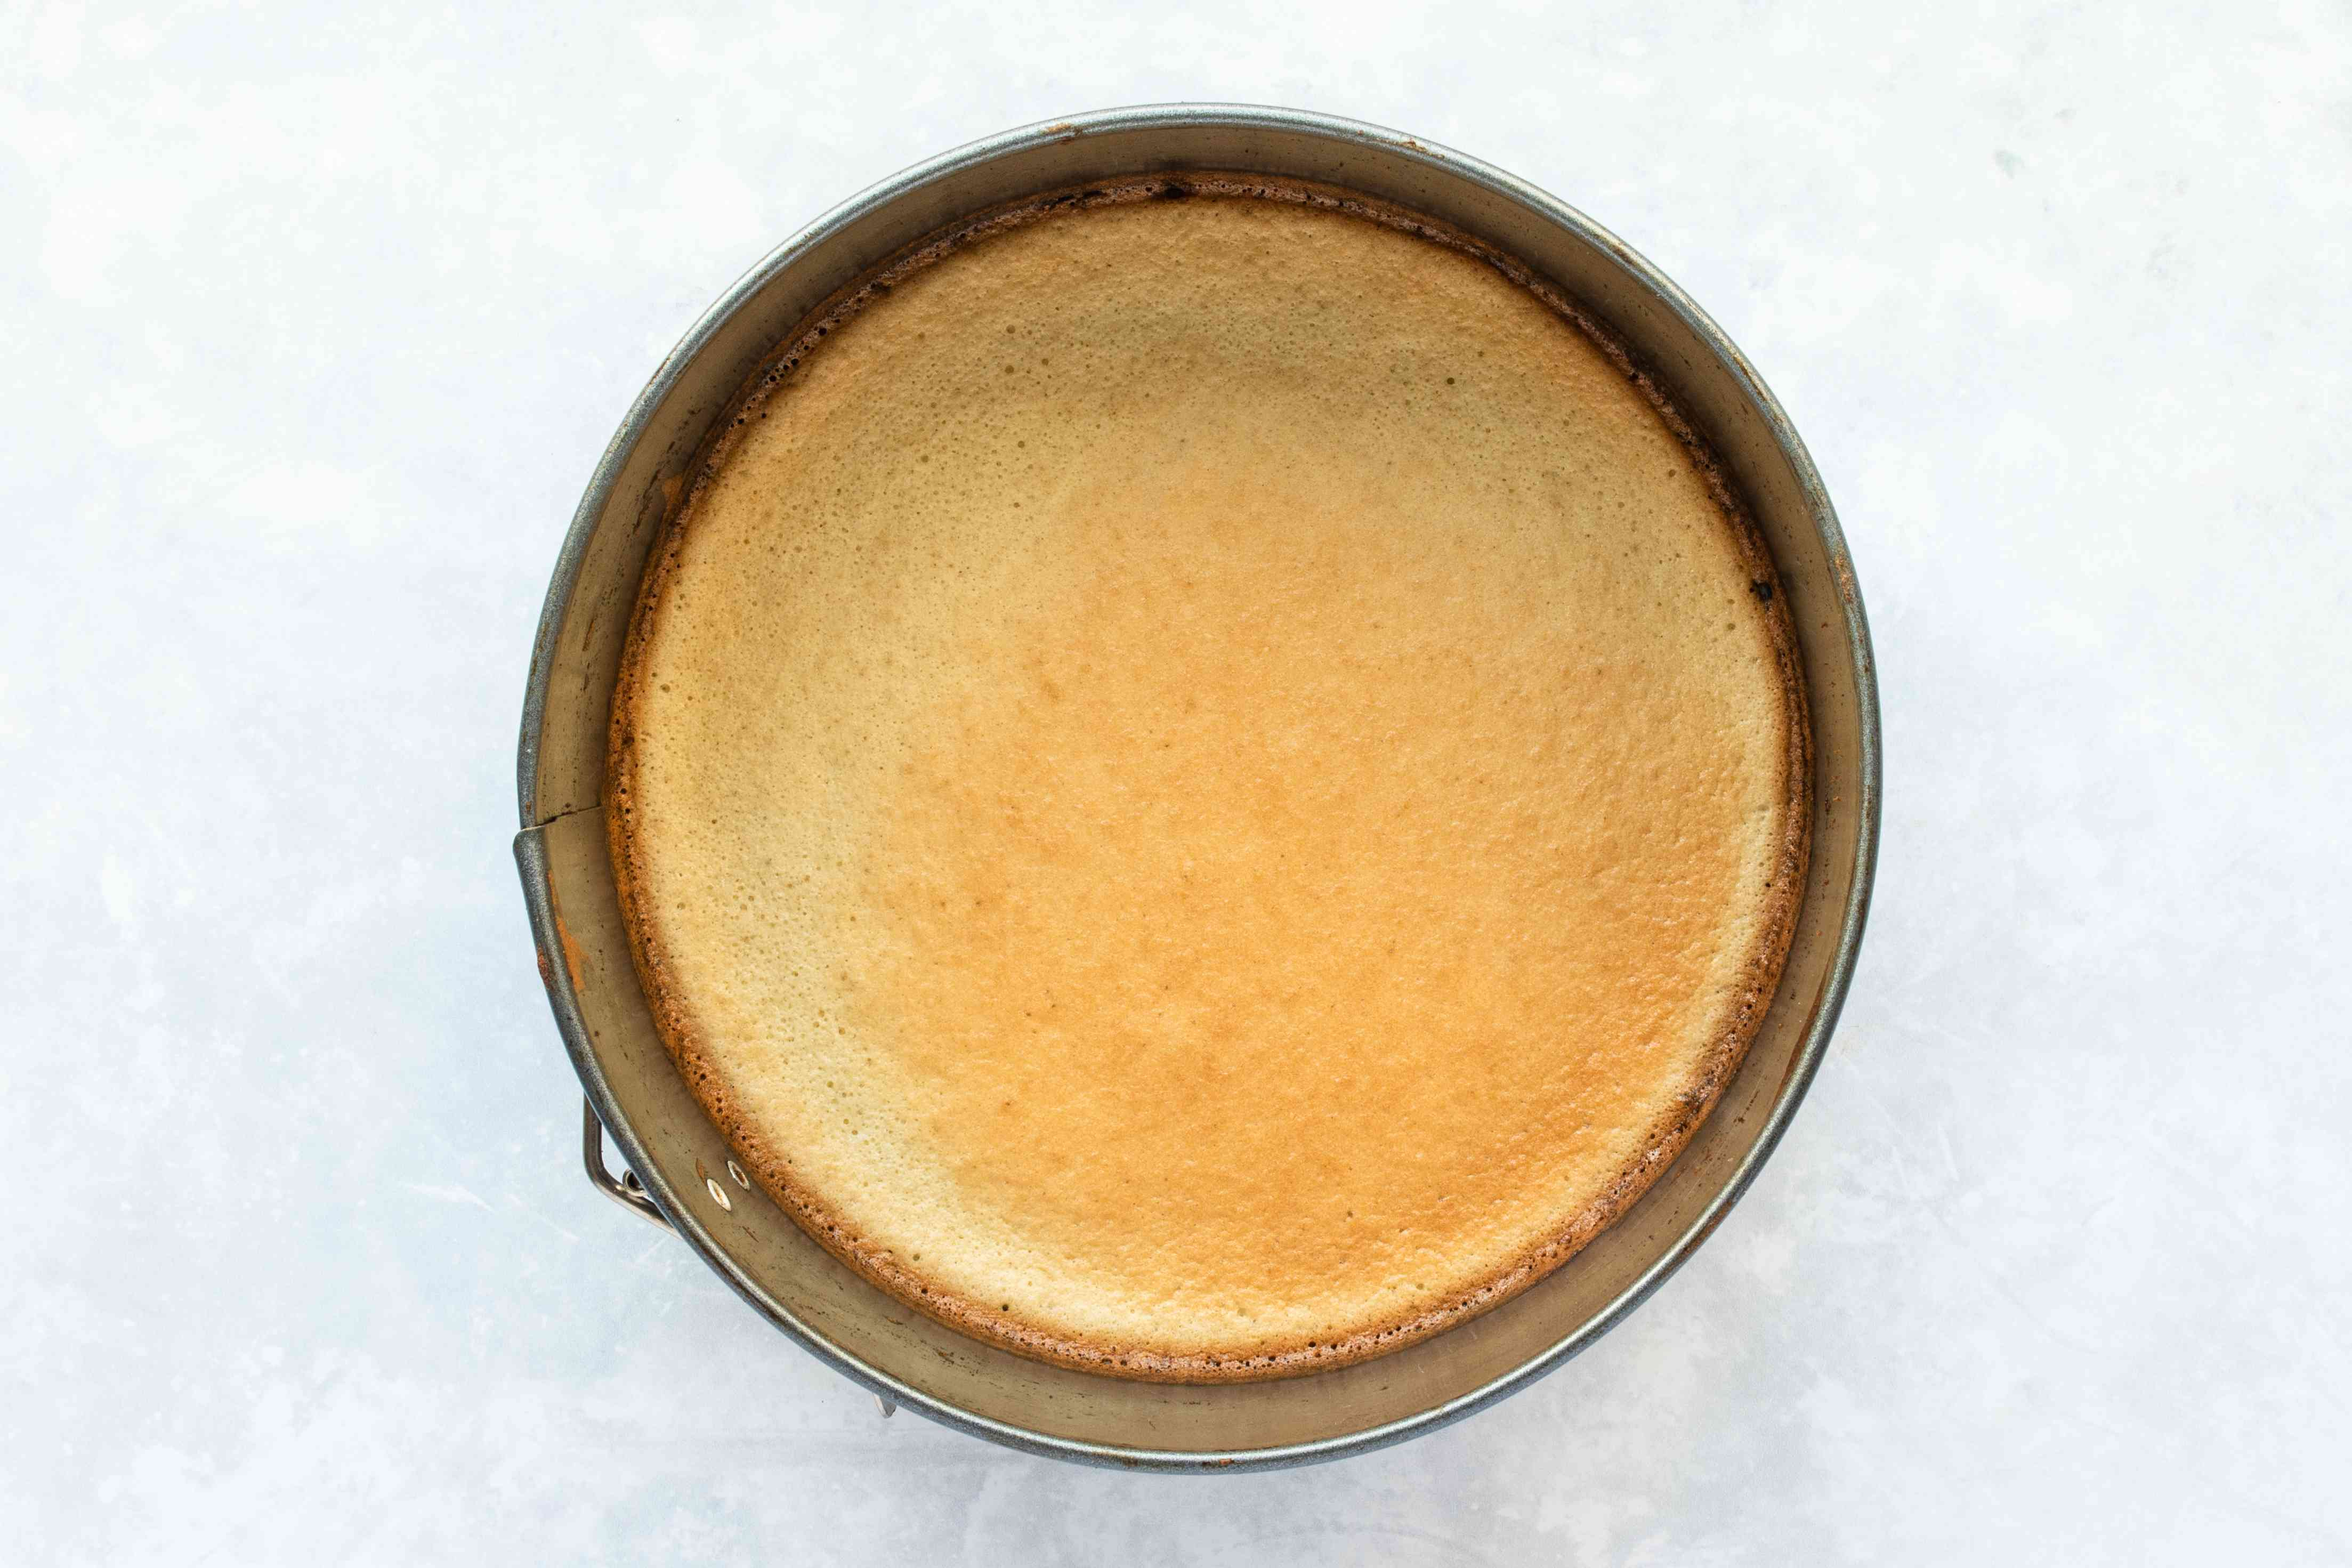 Baked cake layer in a pan